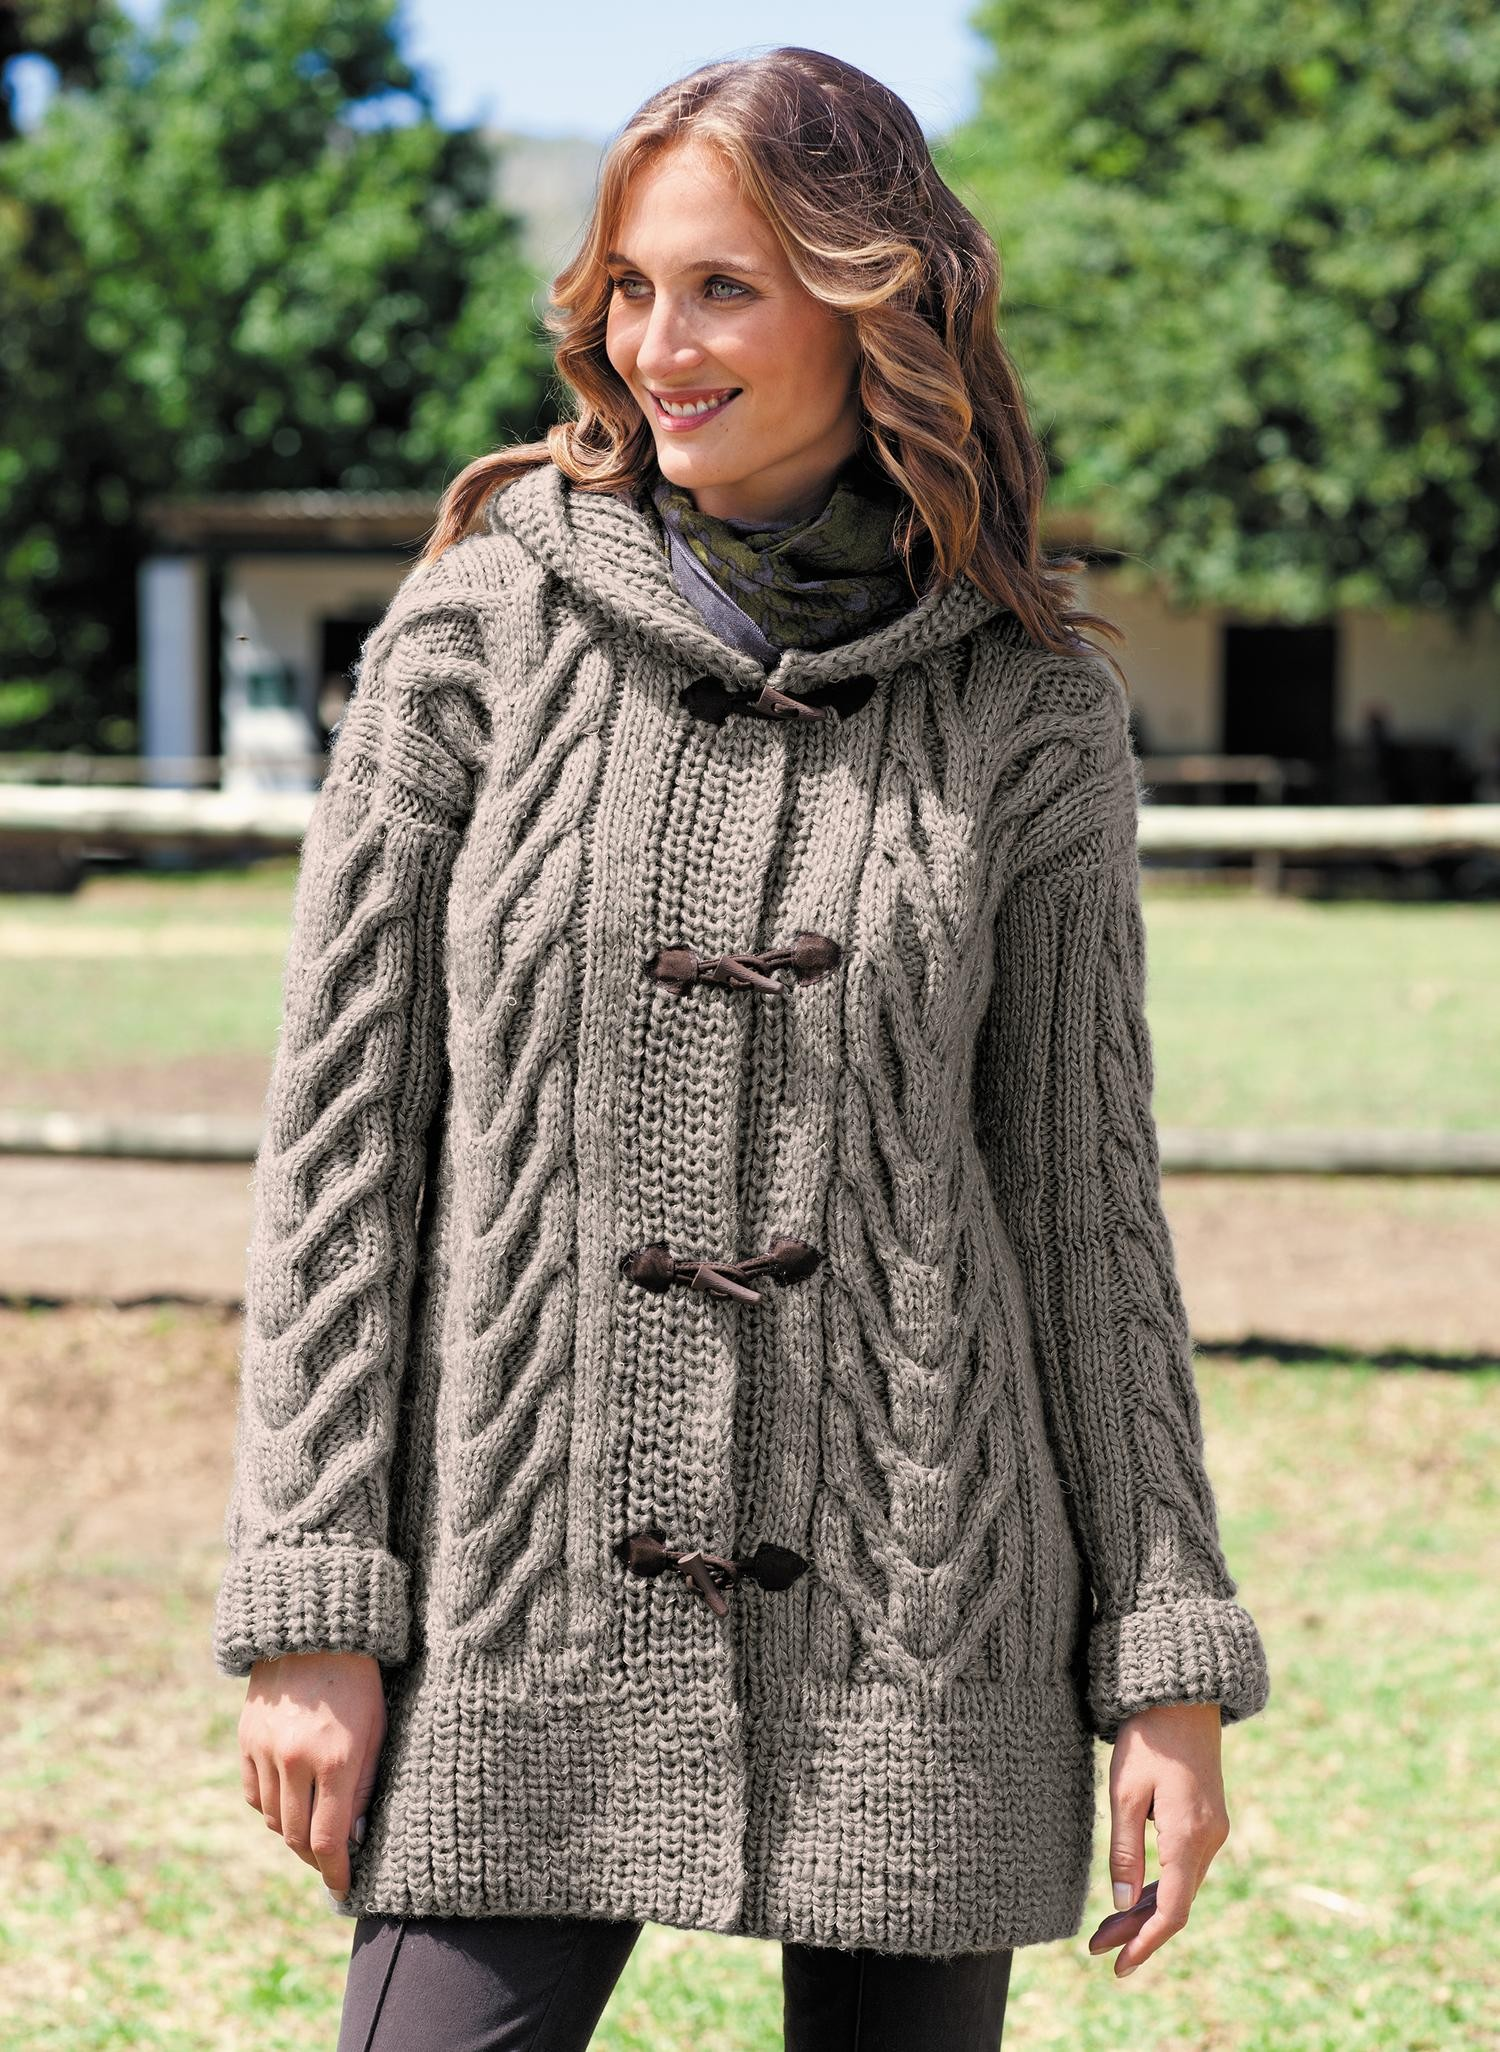 Cabled Hooded coat Free Knitting Pattern ⋆ Knitting Bee